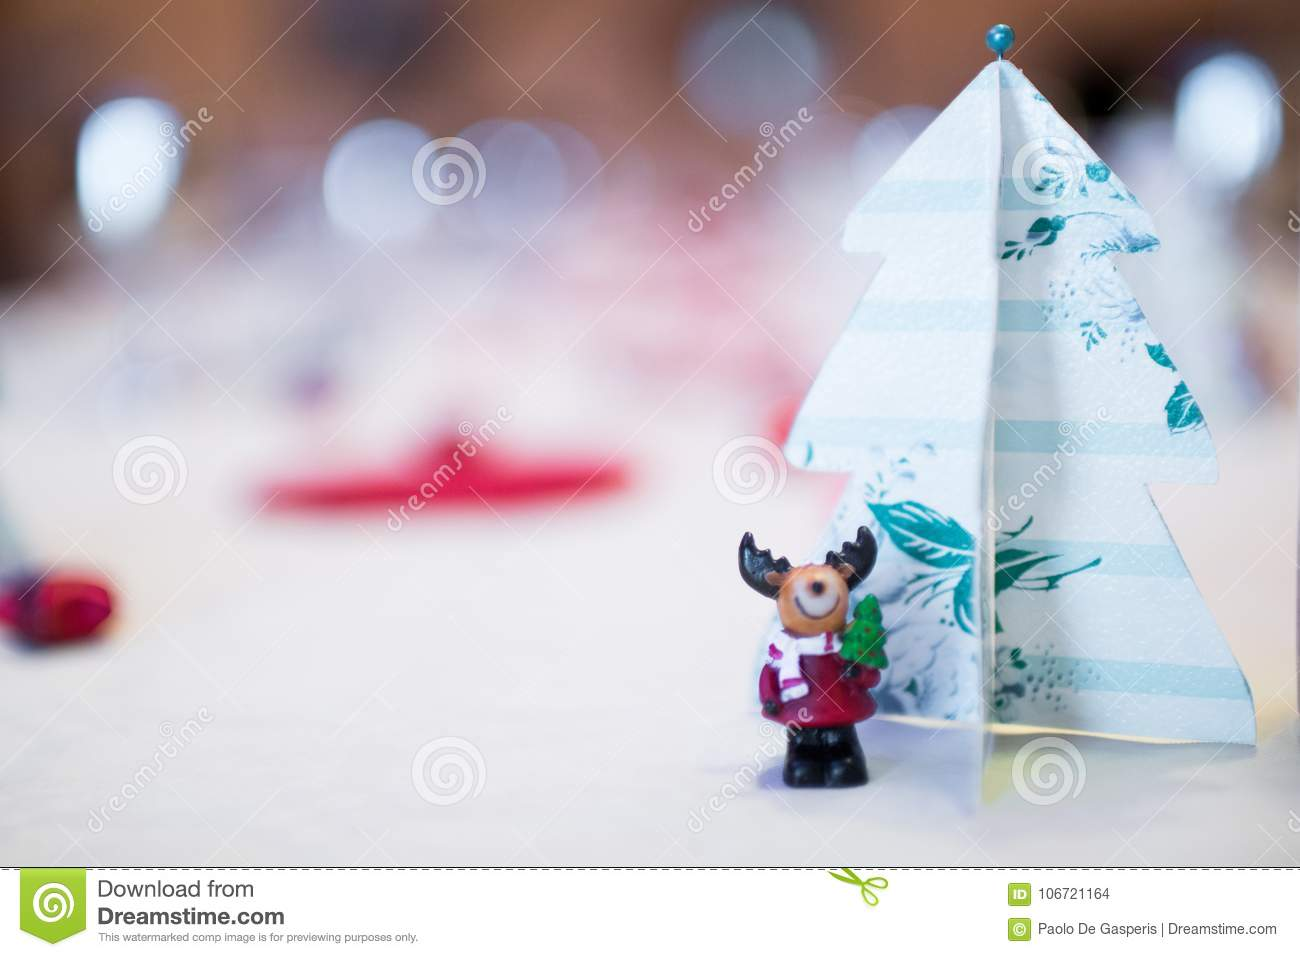 Christmas Decorations With Paper Christmas Trees And A